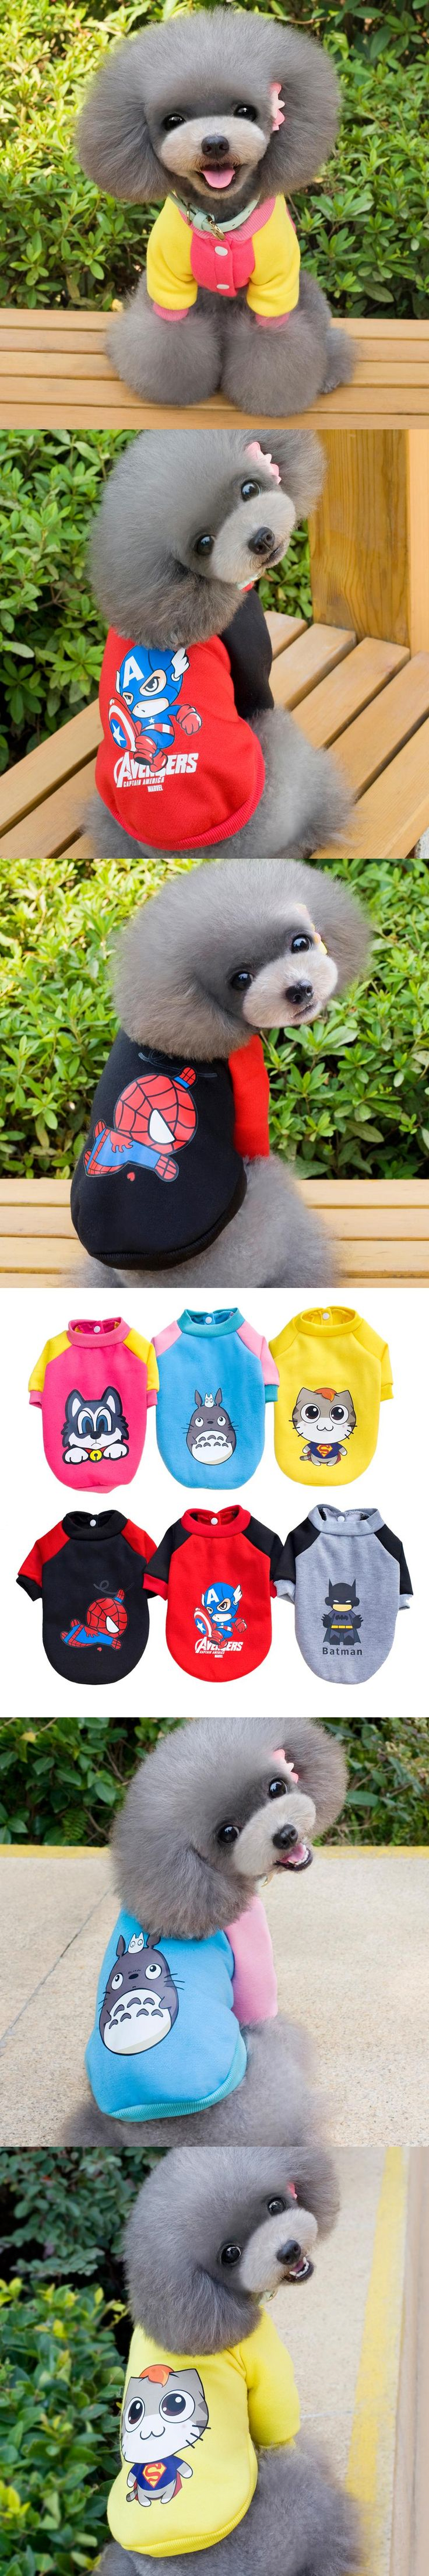 Cartoon Small Dog Clothes Sweater Coat Cute Puppy Shirts Totoro Spiderman Batman Design Superhero Chihuahua Cat Dog Costume